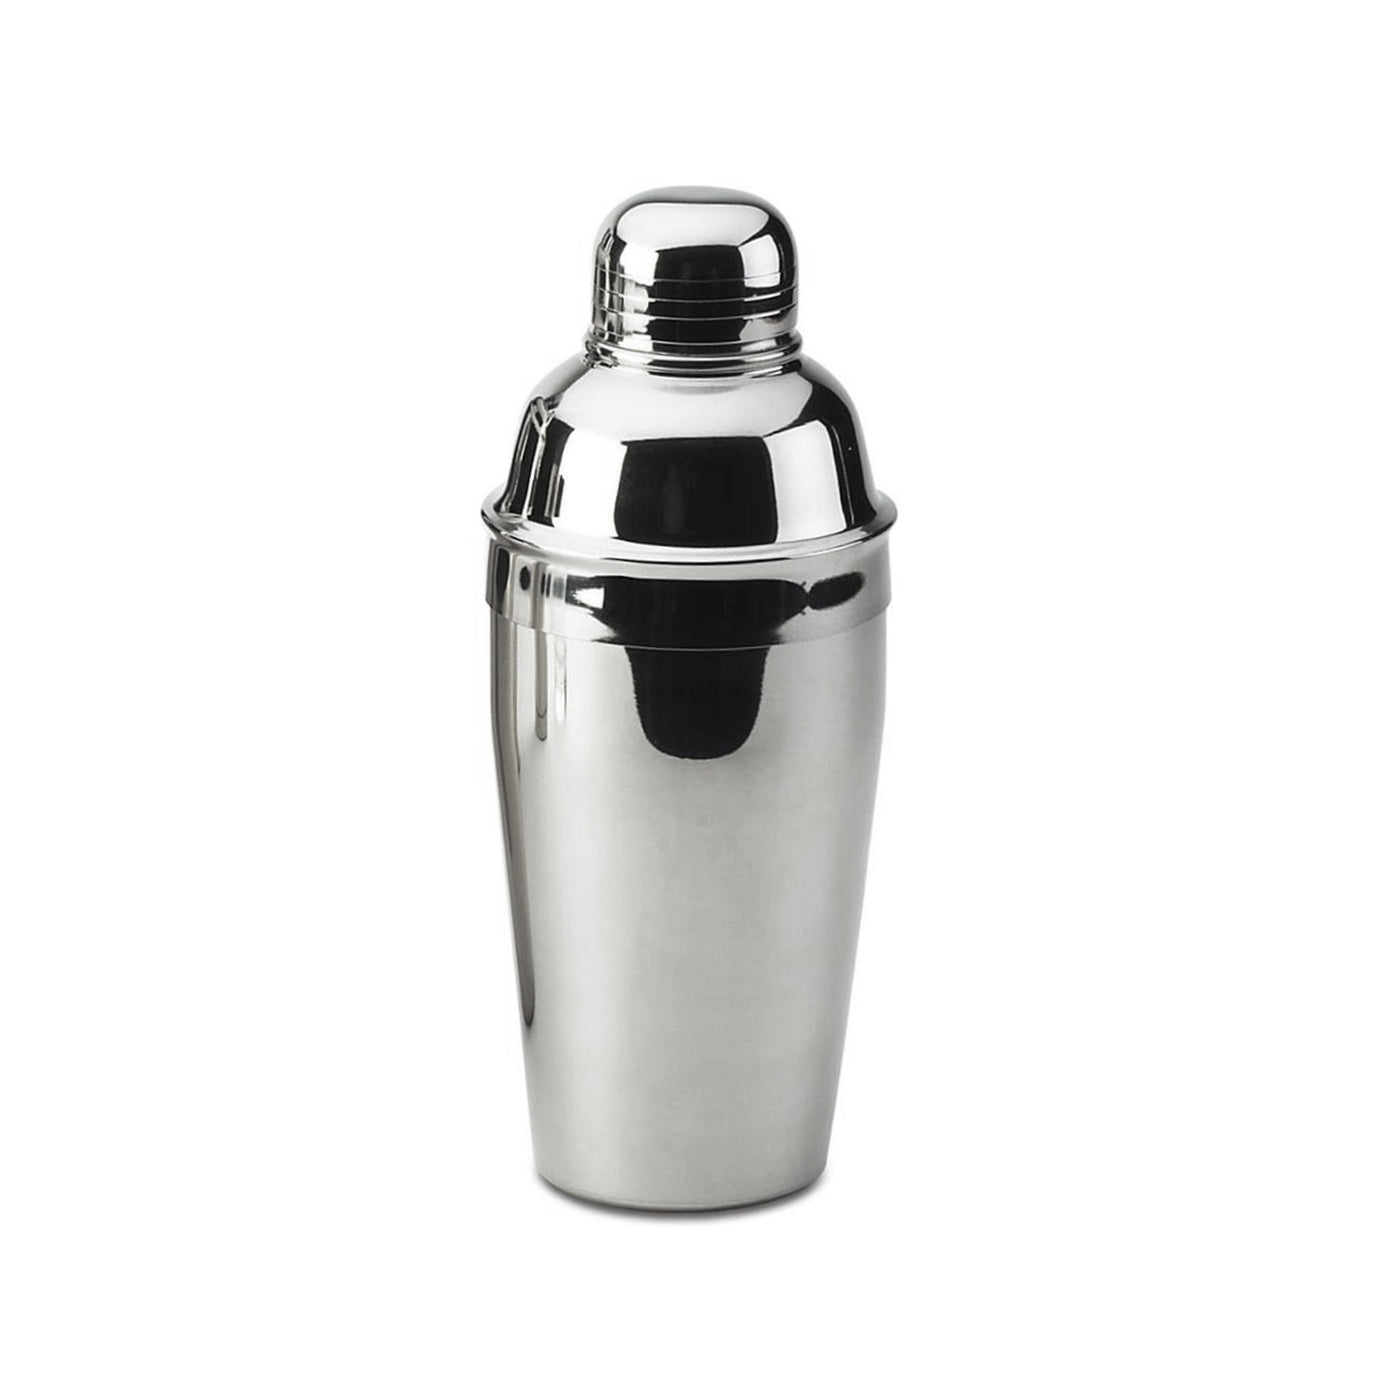 Three Piece Cocktail Shaker